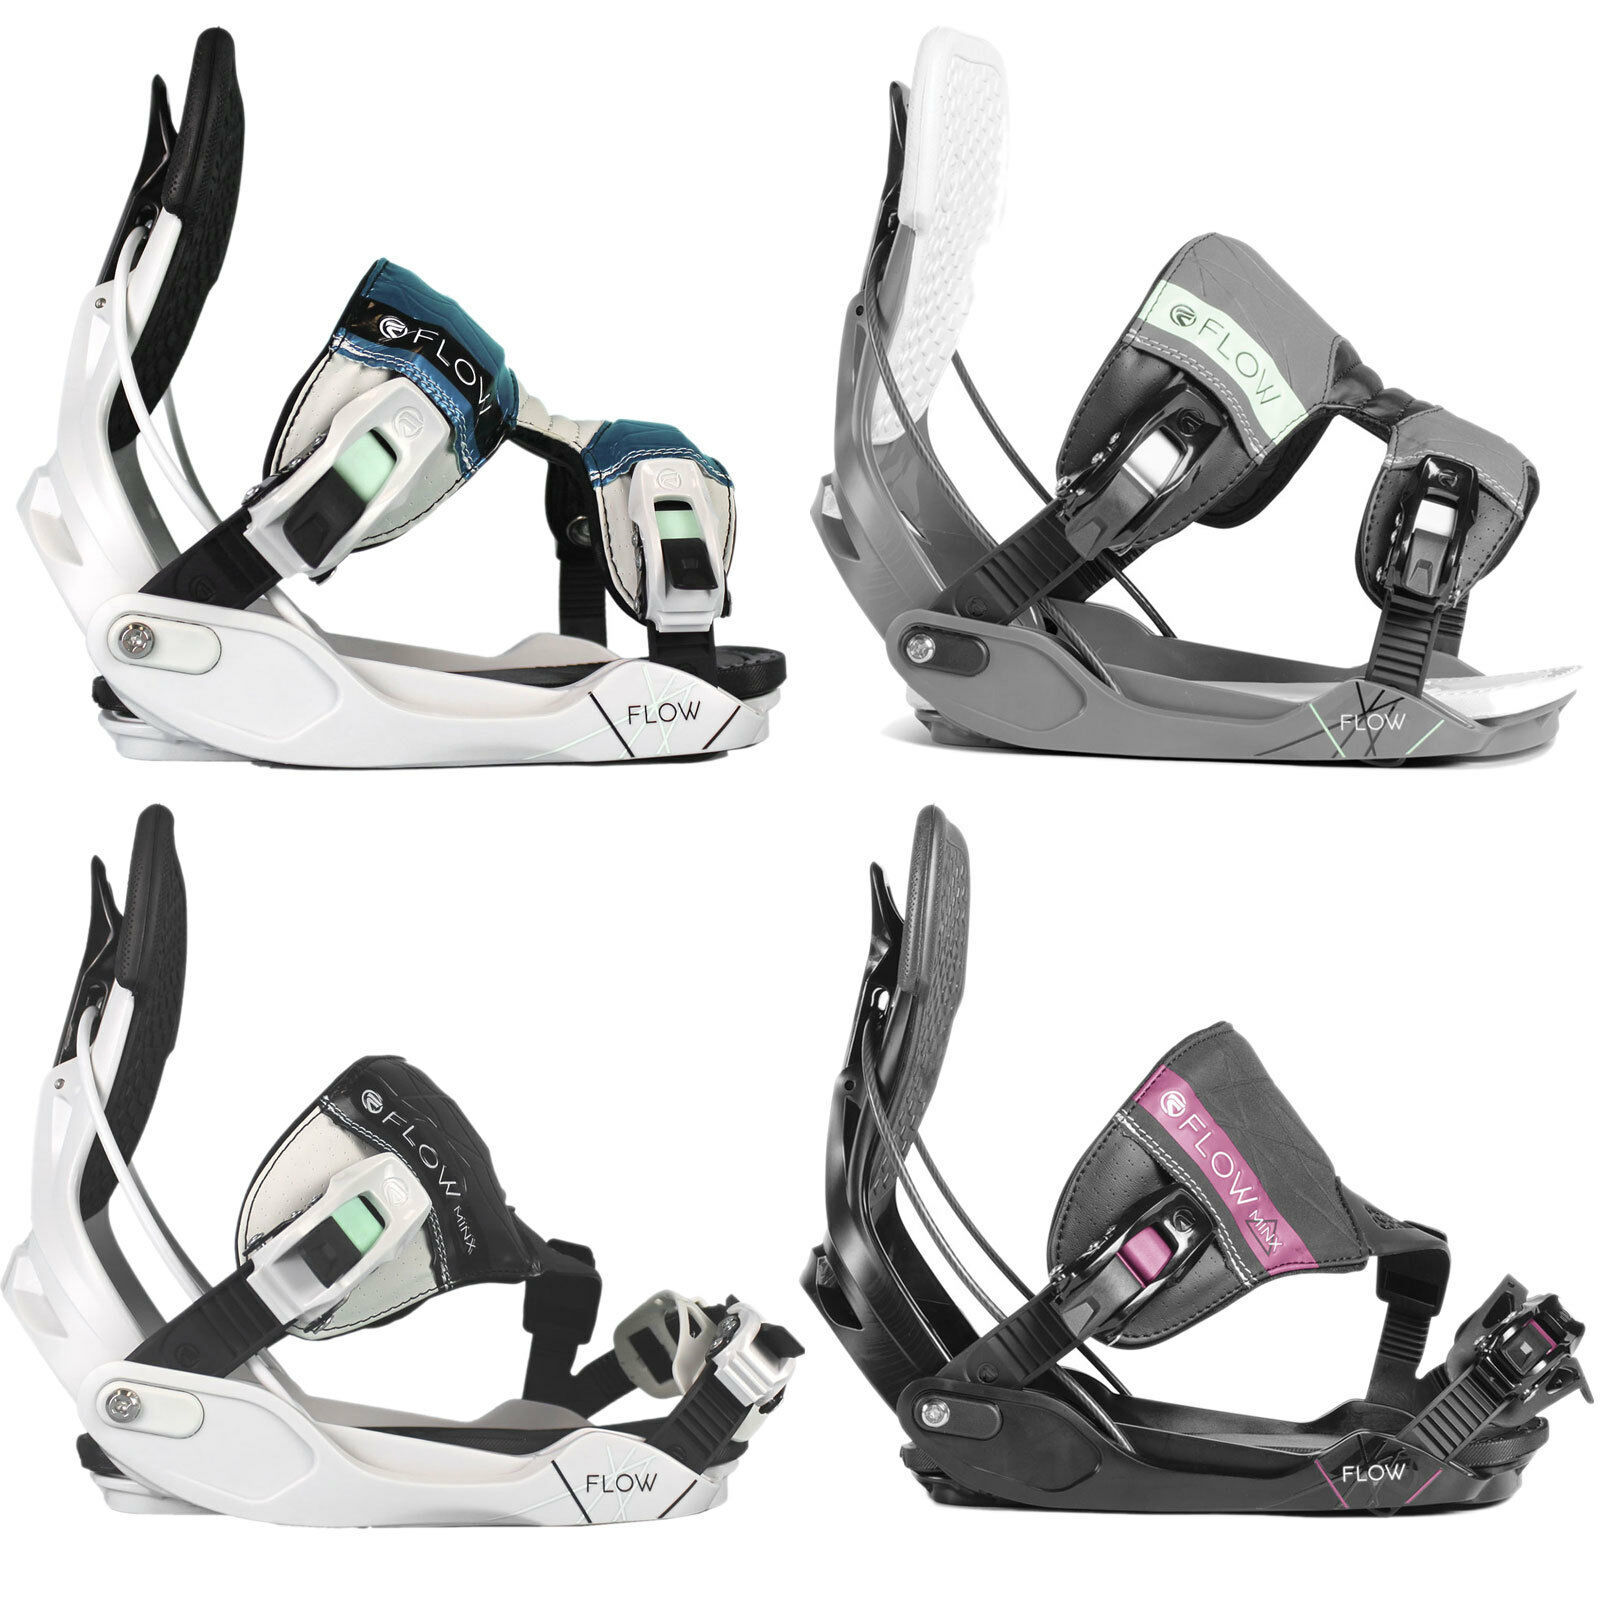 Flow Minx Womens Snowboard Binding Step-In Snowboard Binding 2018-2019 New